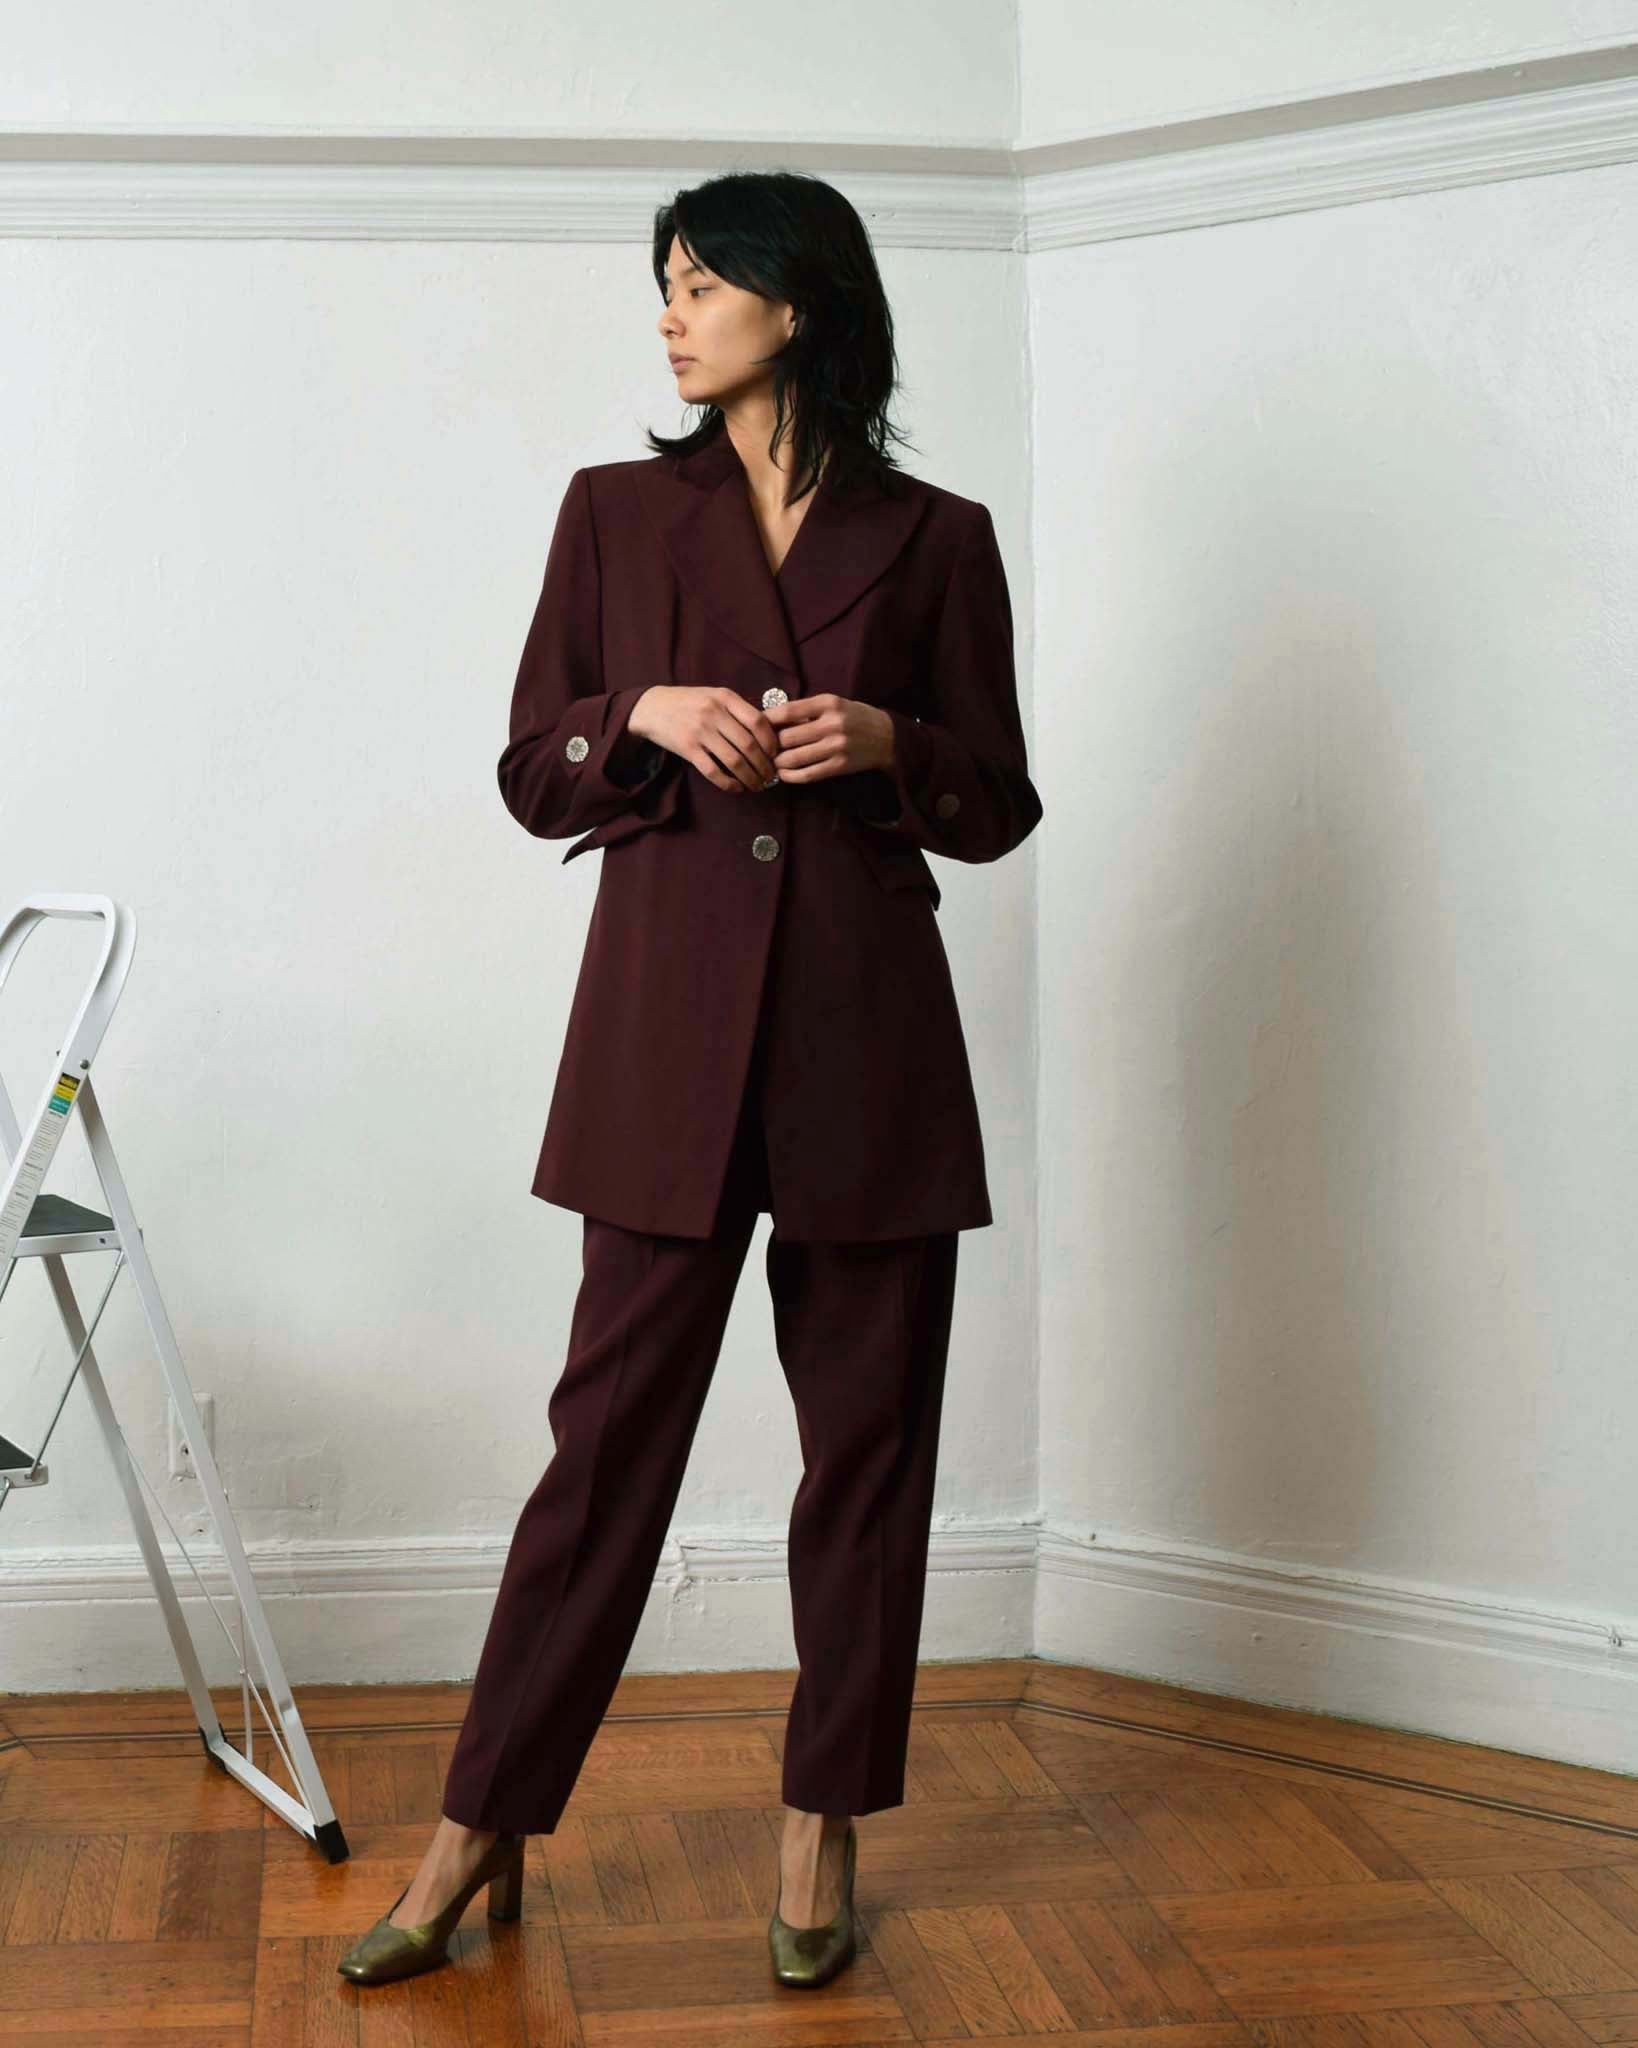 Christian Lacroix Burgundy Suit